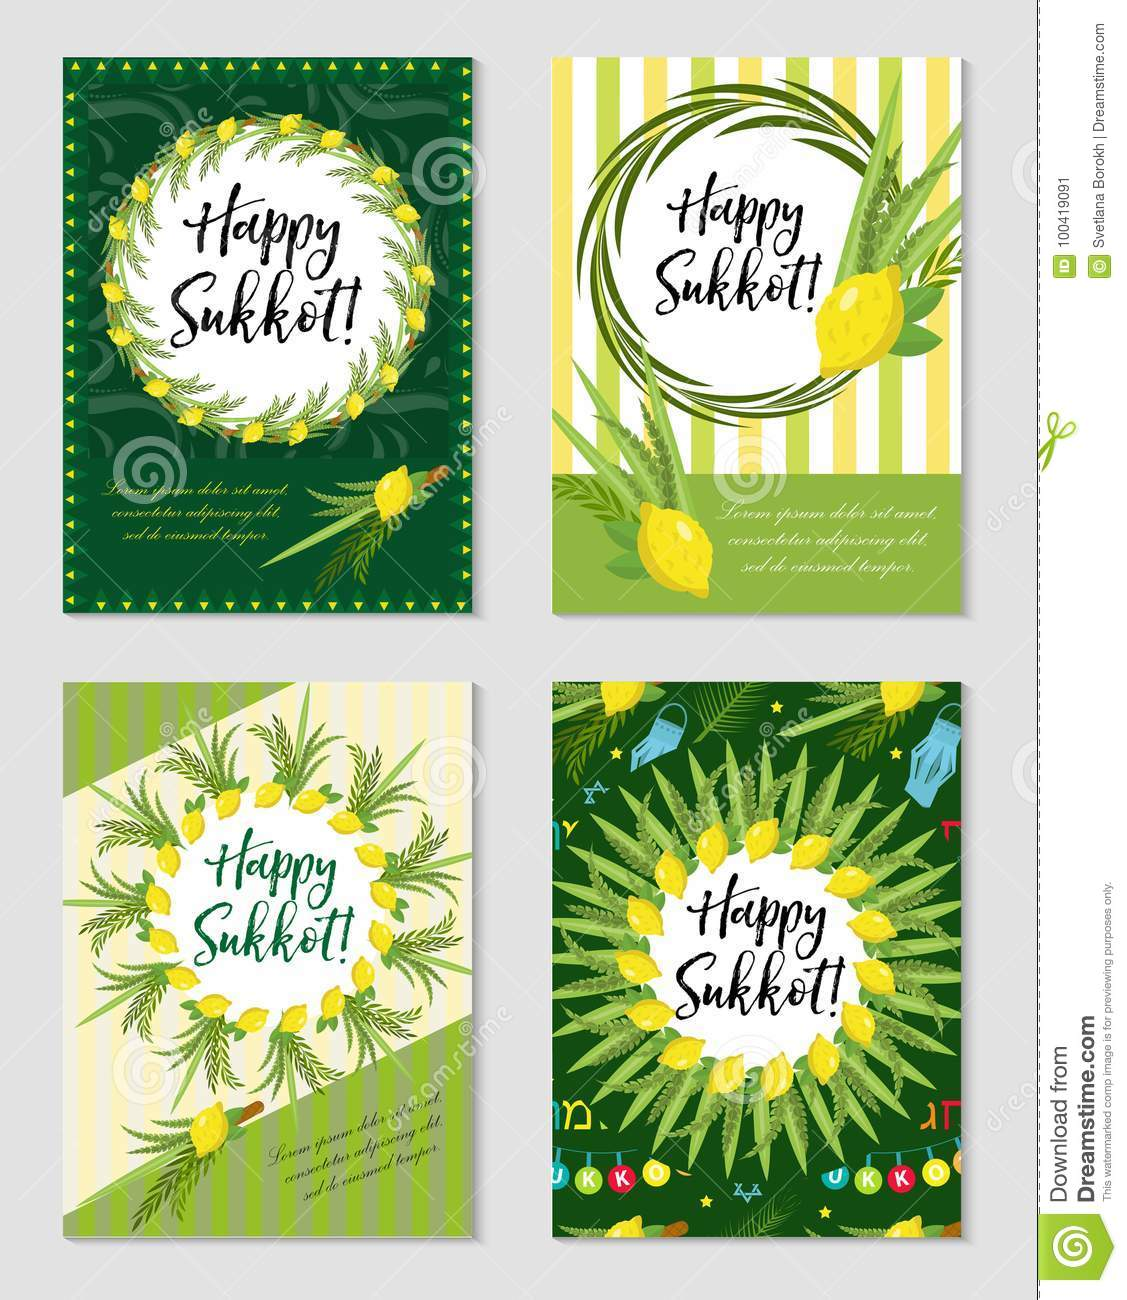 Happy Sukkot Set Of Flyers Or Posters Sukkot Collection Of